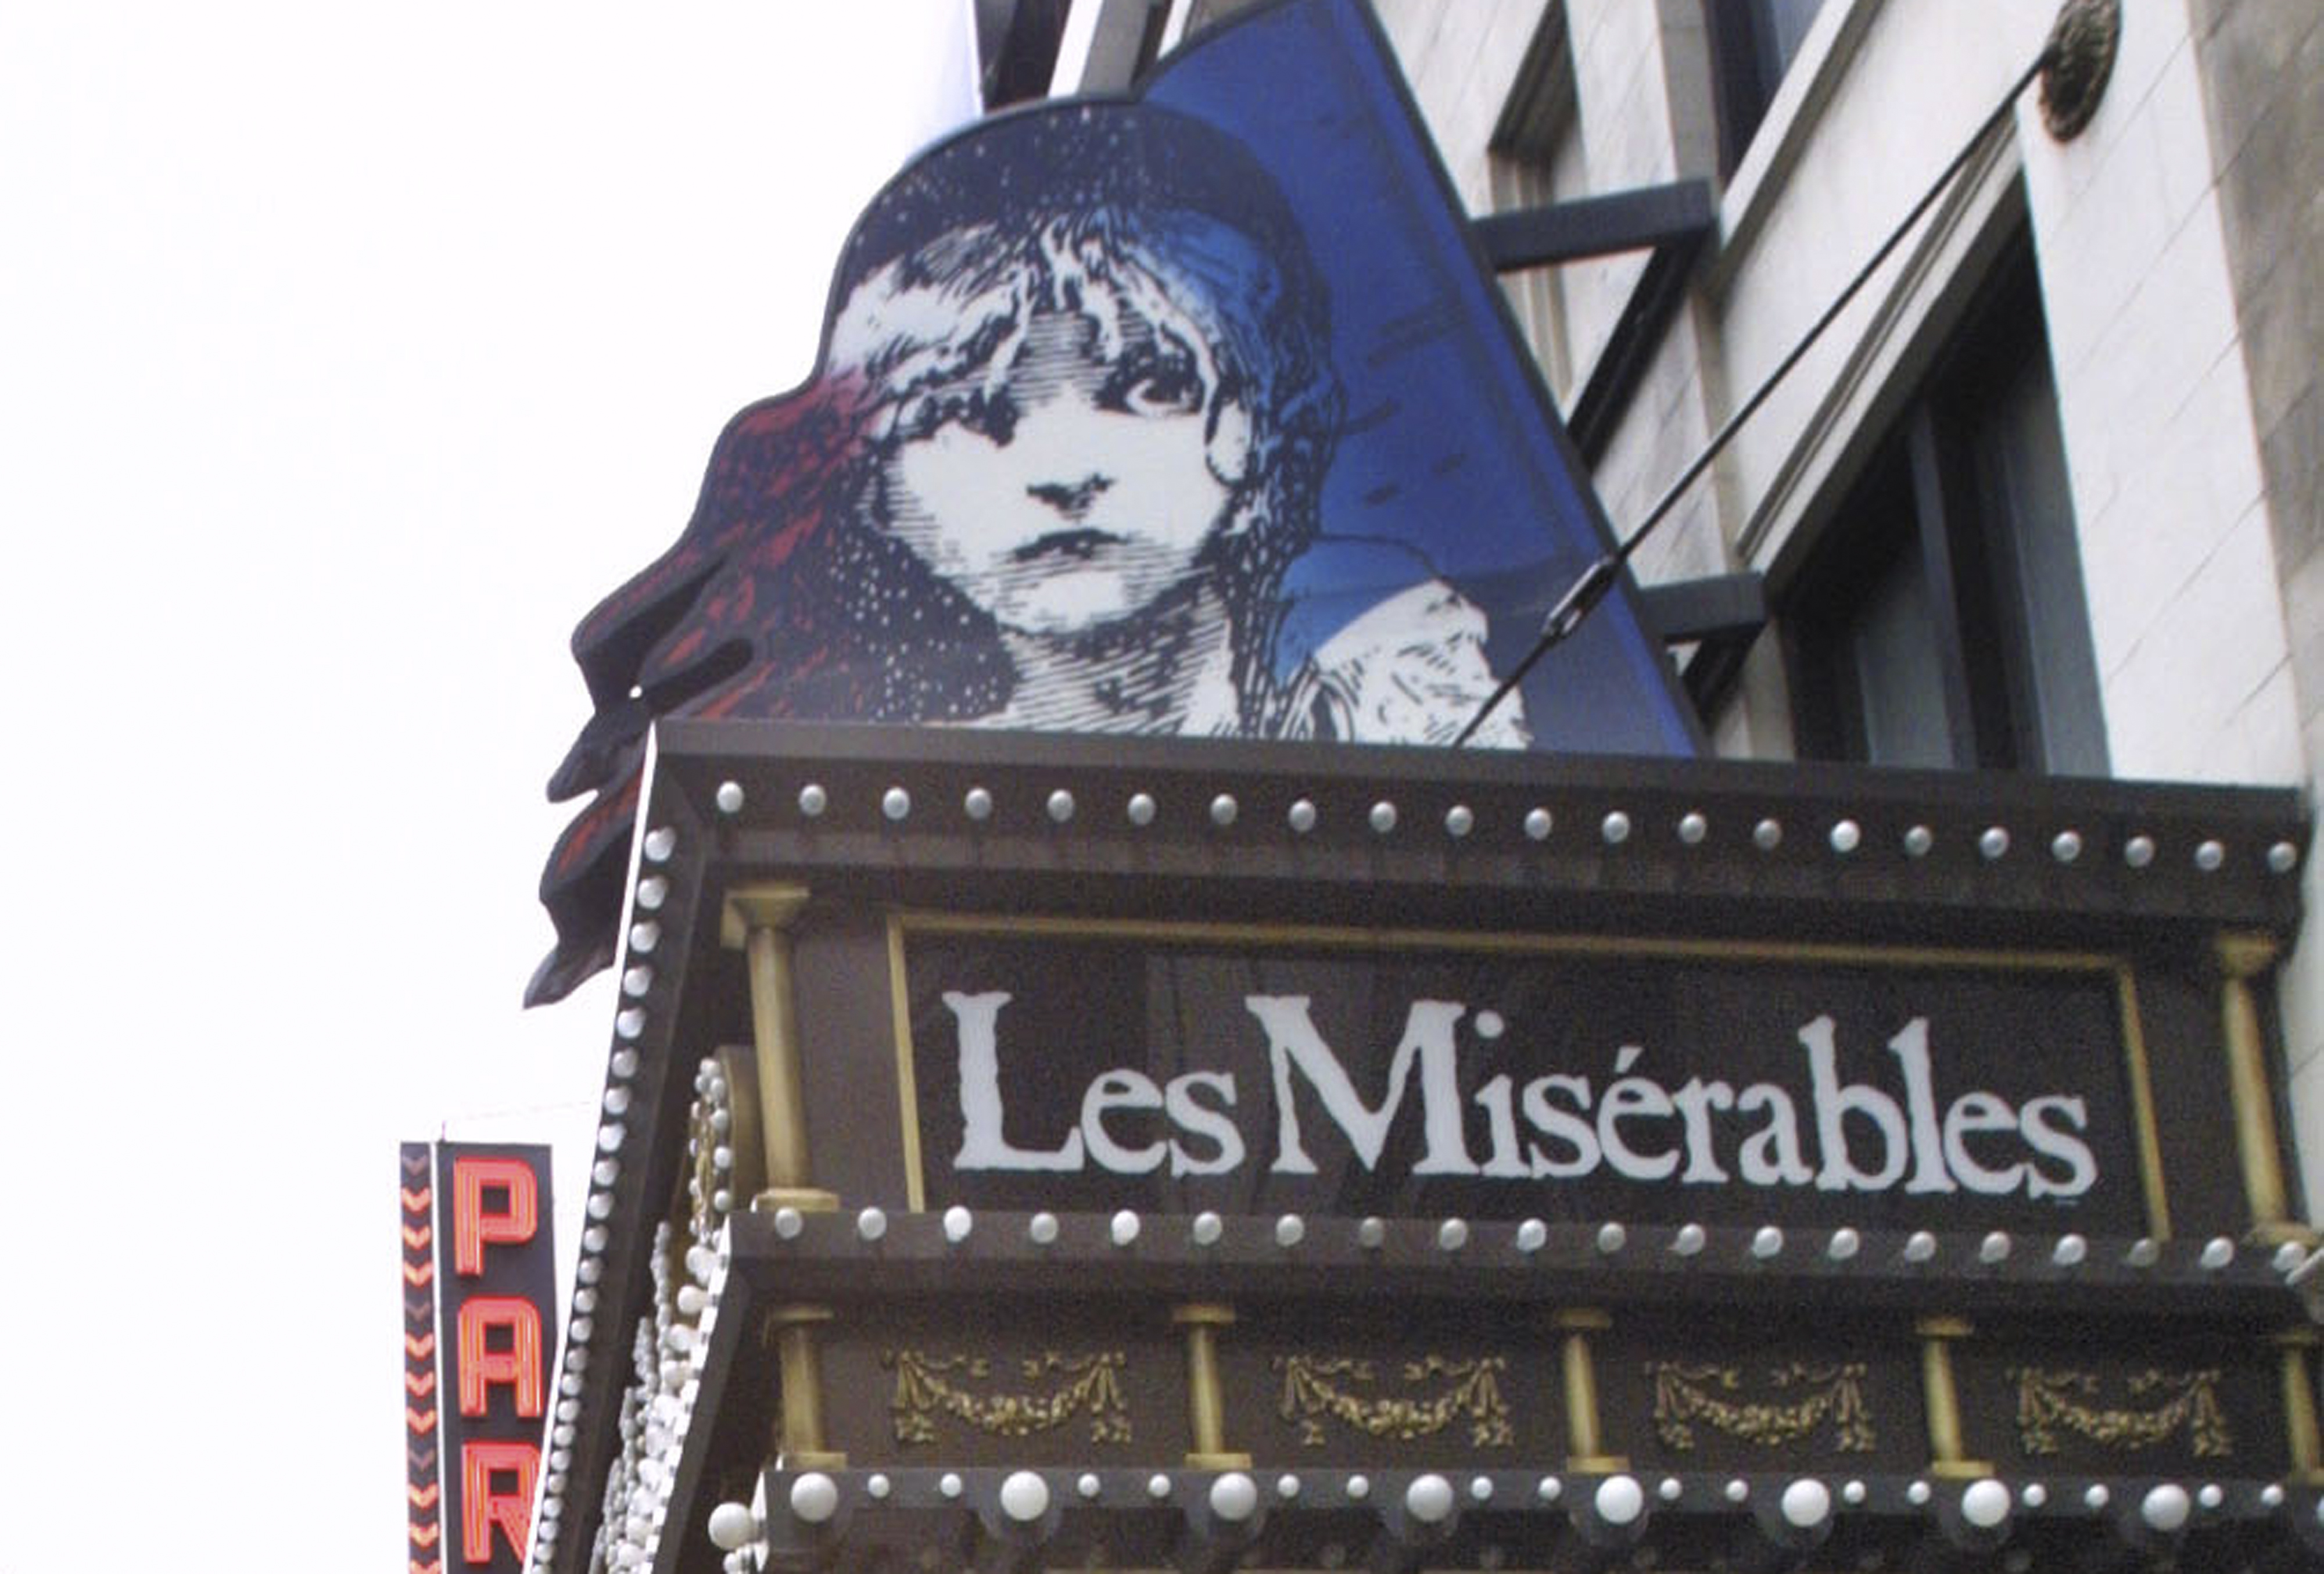 Amarquee displays the advertisement for theater show Les Miserables, in New York on March 11, 2003.